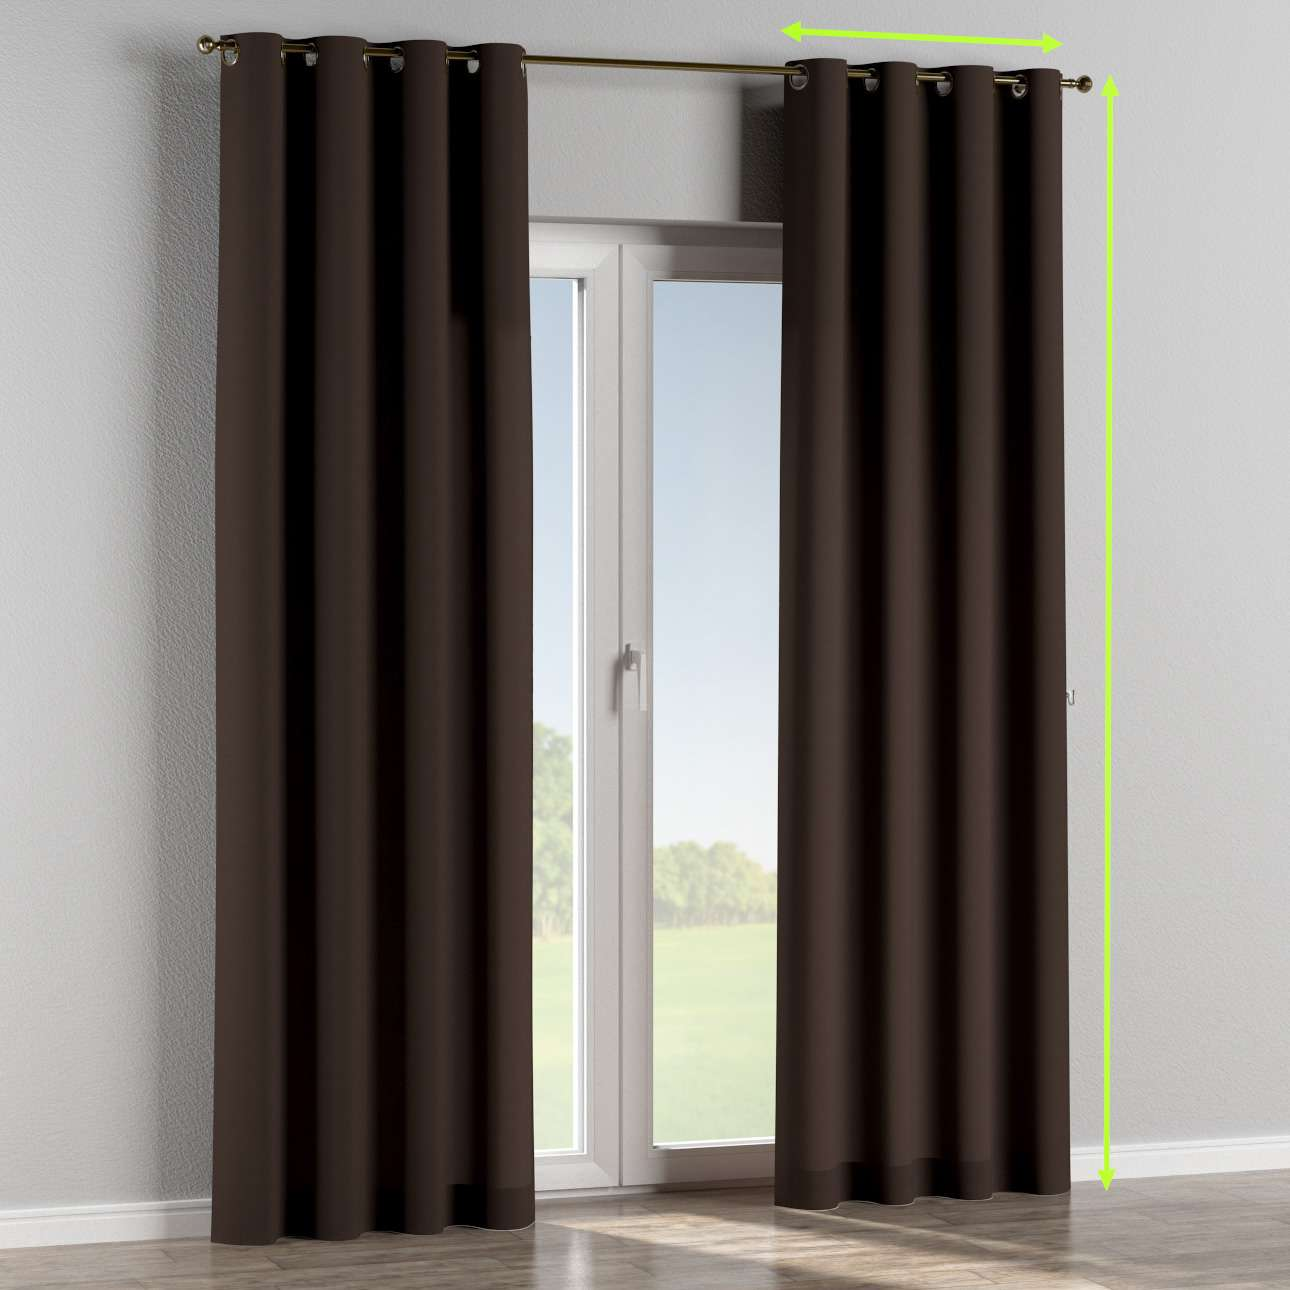 Eyelet curtain in collection Panama Cotton, fabric: 702-03